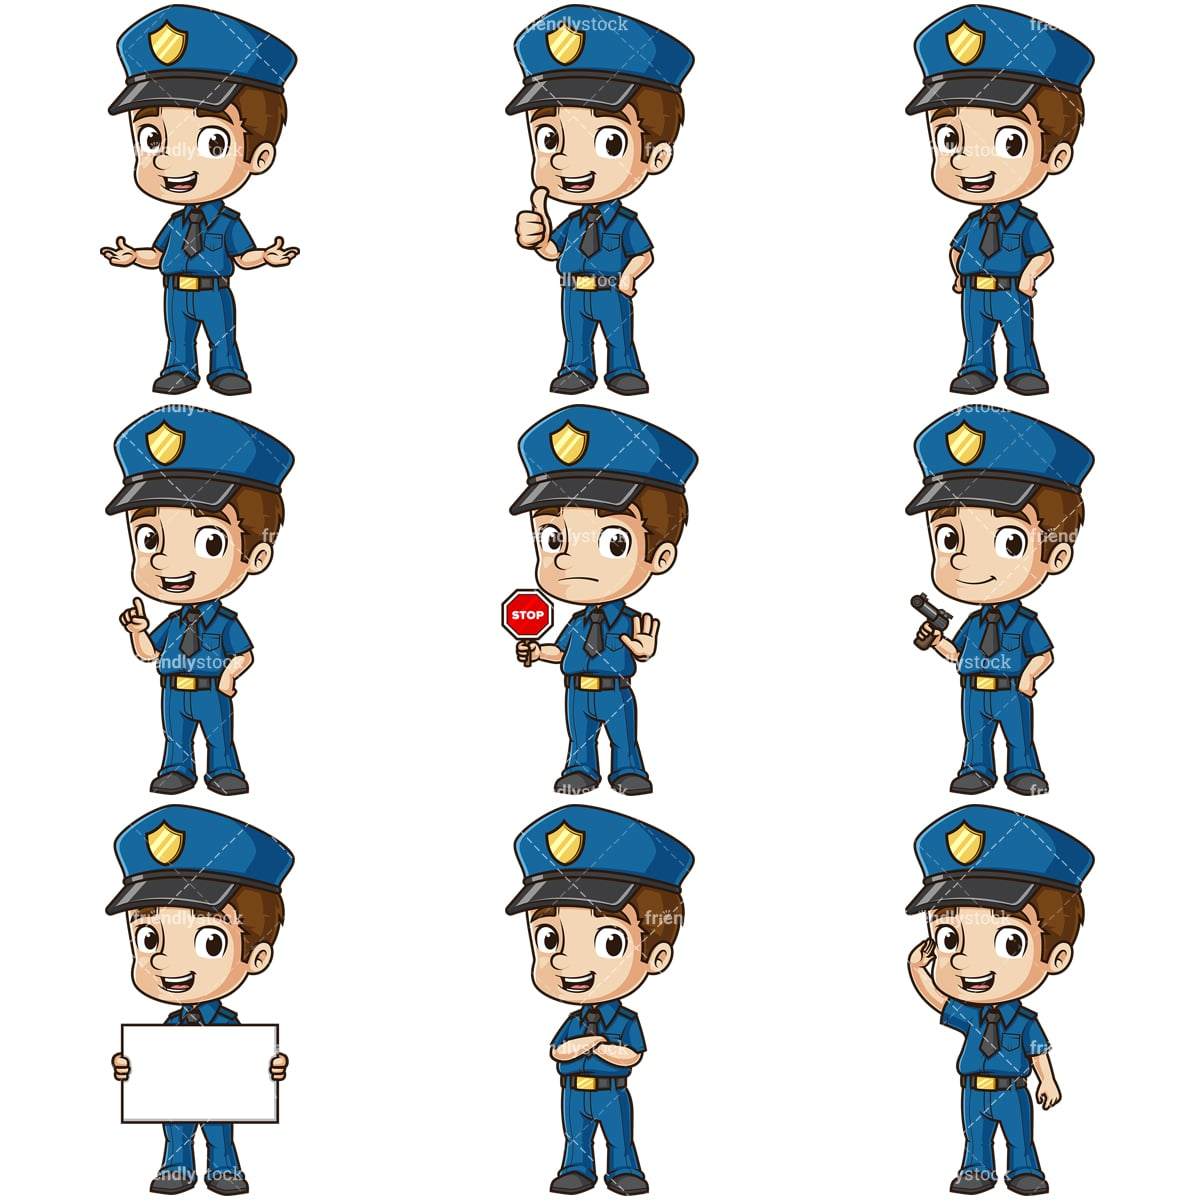 Laughing Policeman Stock Illustrations – 82 Laughing Policeman Stock  Illustrations, Vectors & Clipart - Dreamstime